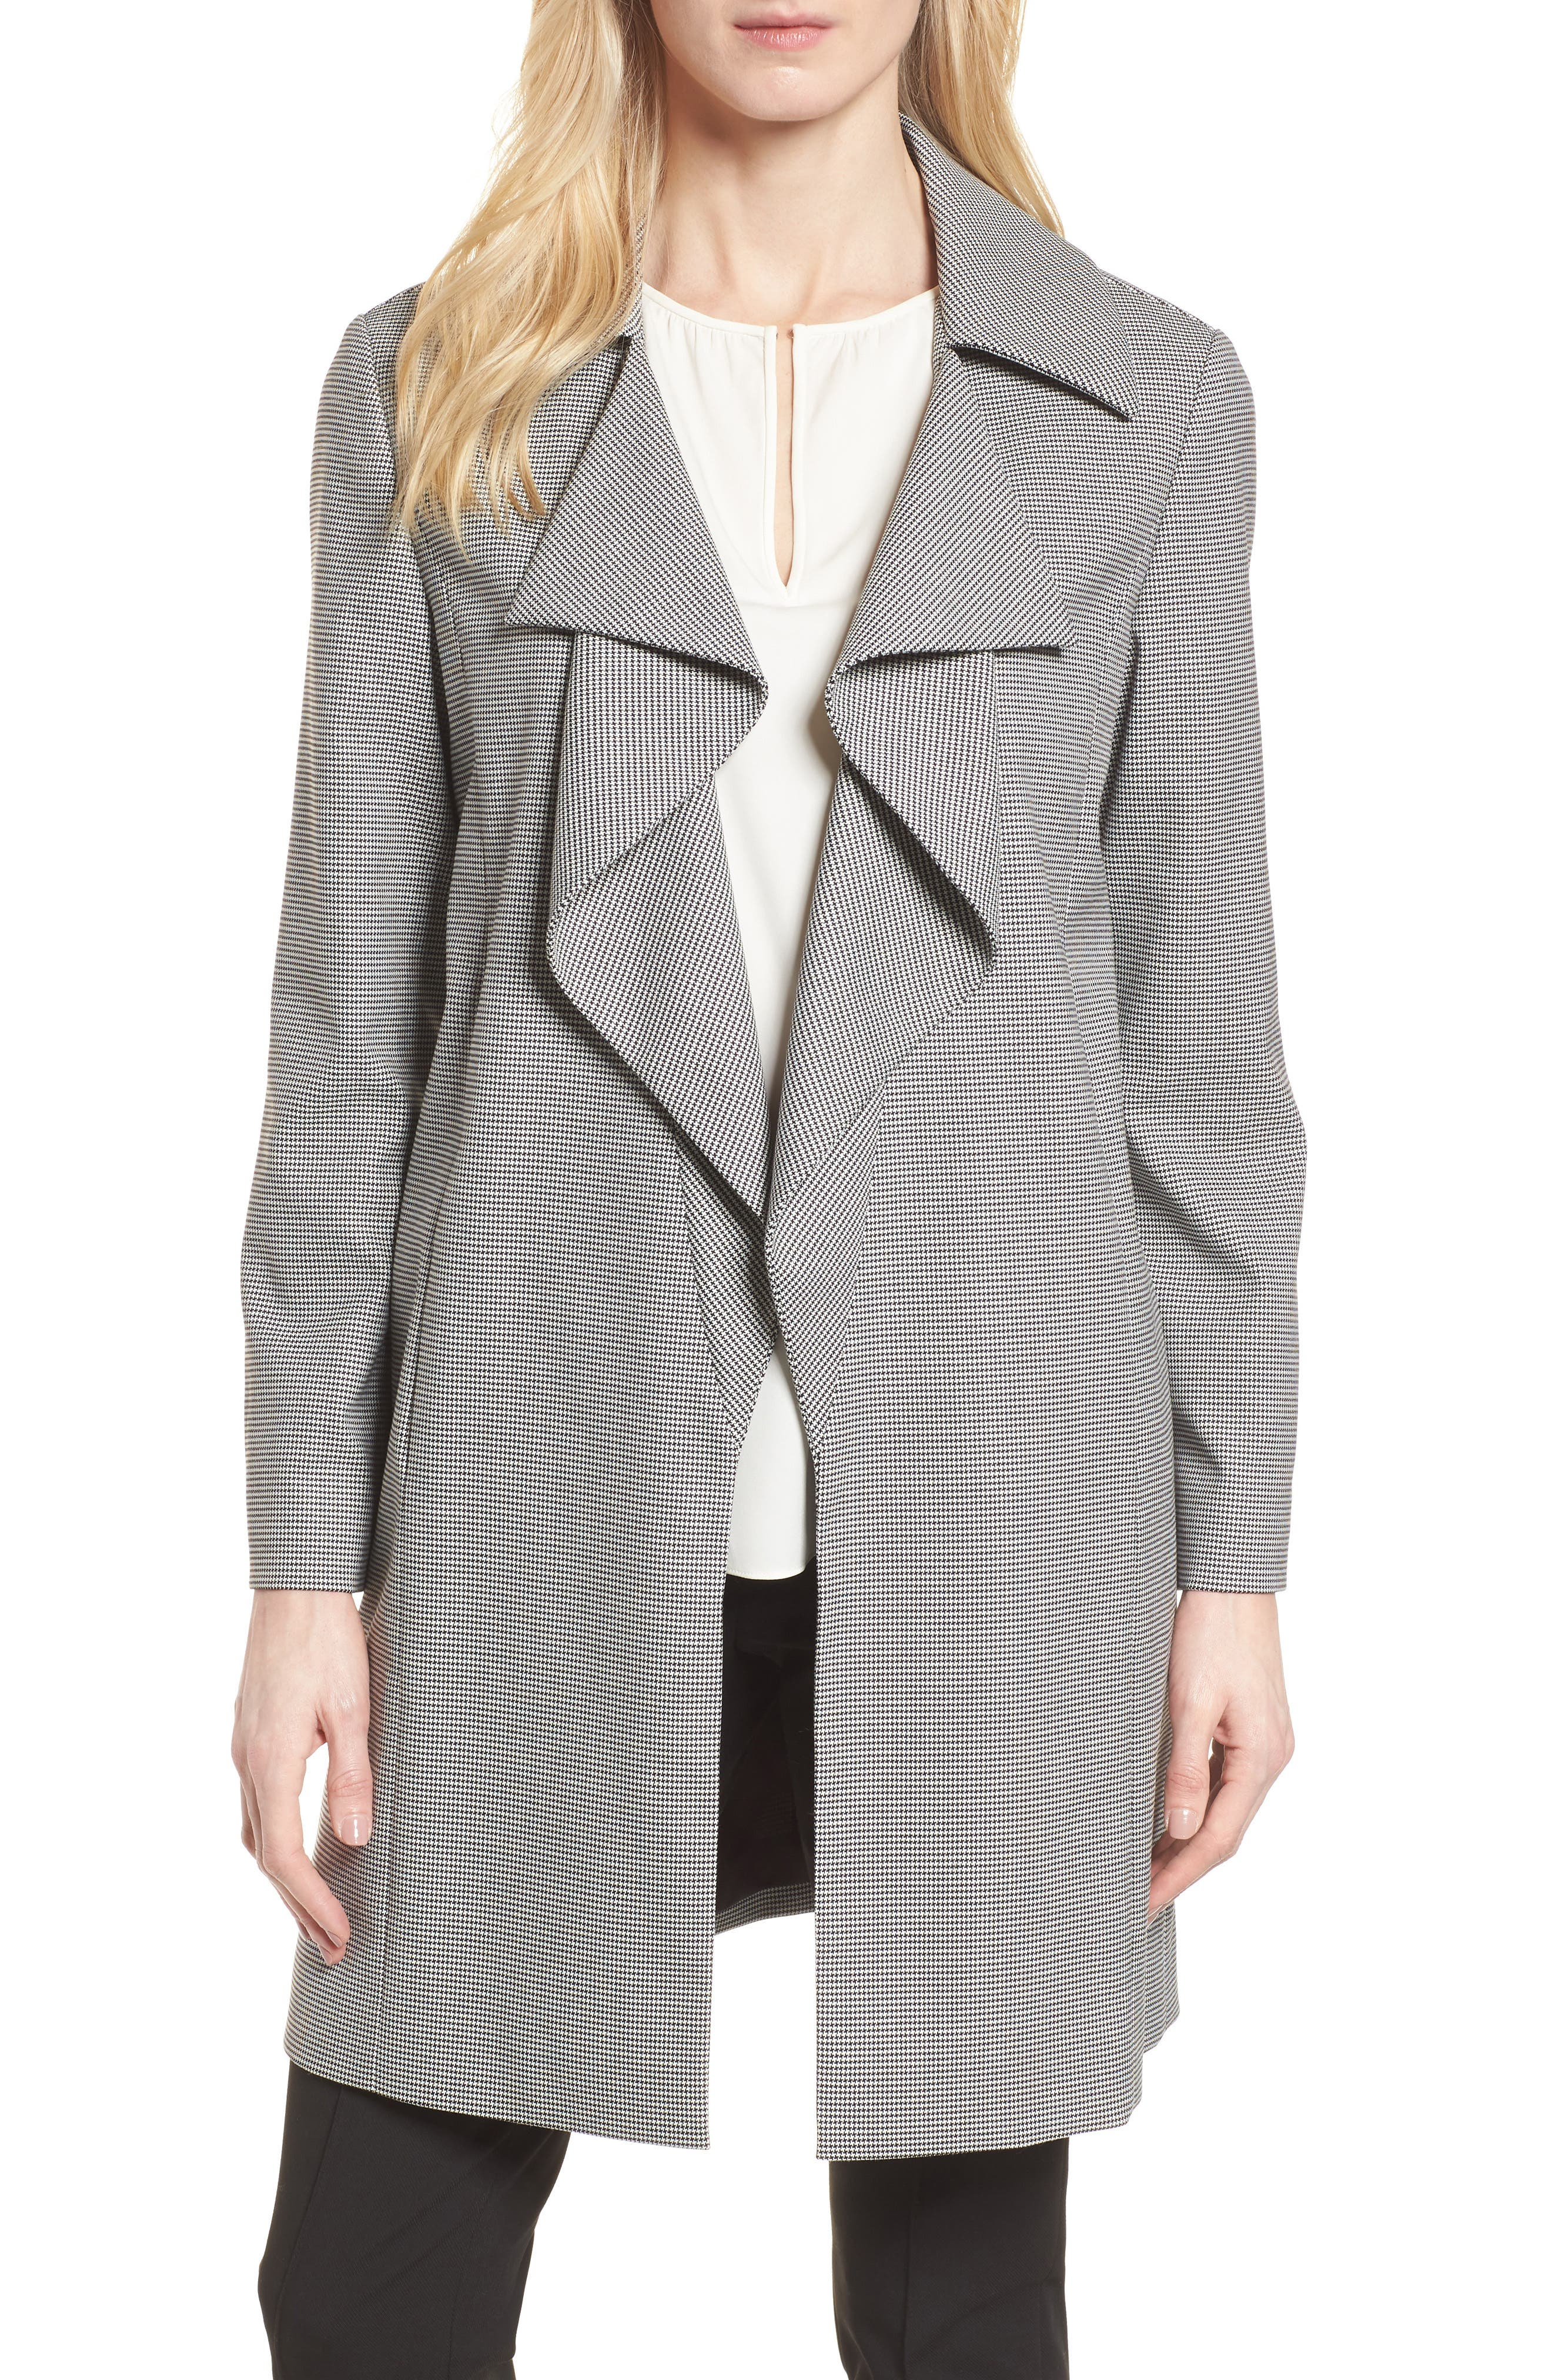 Emerson Rose Houndstooth Open Front Jacket